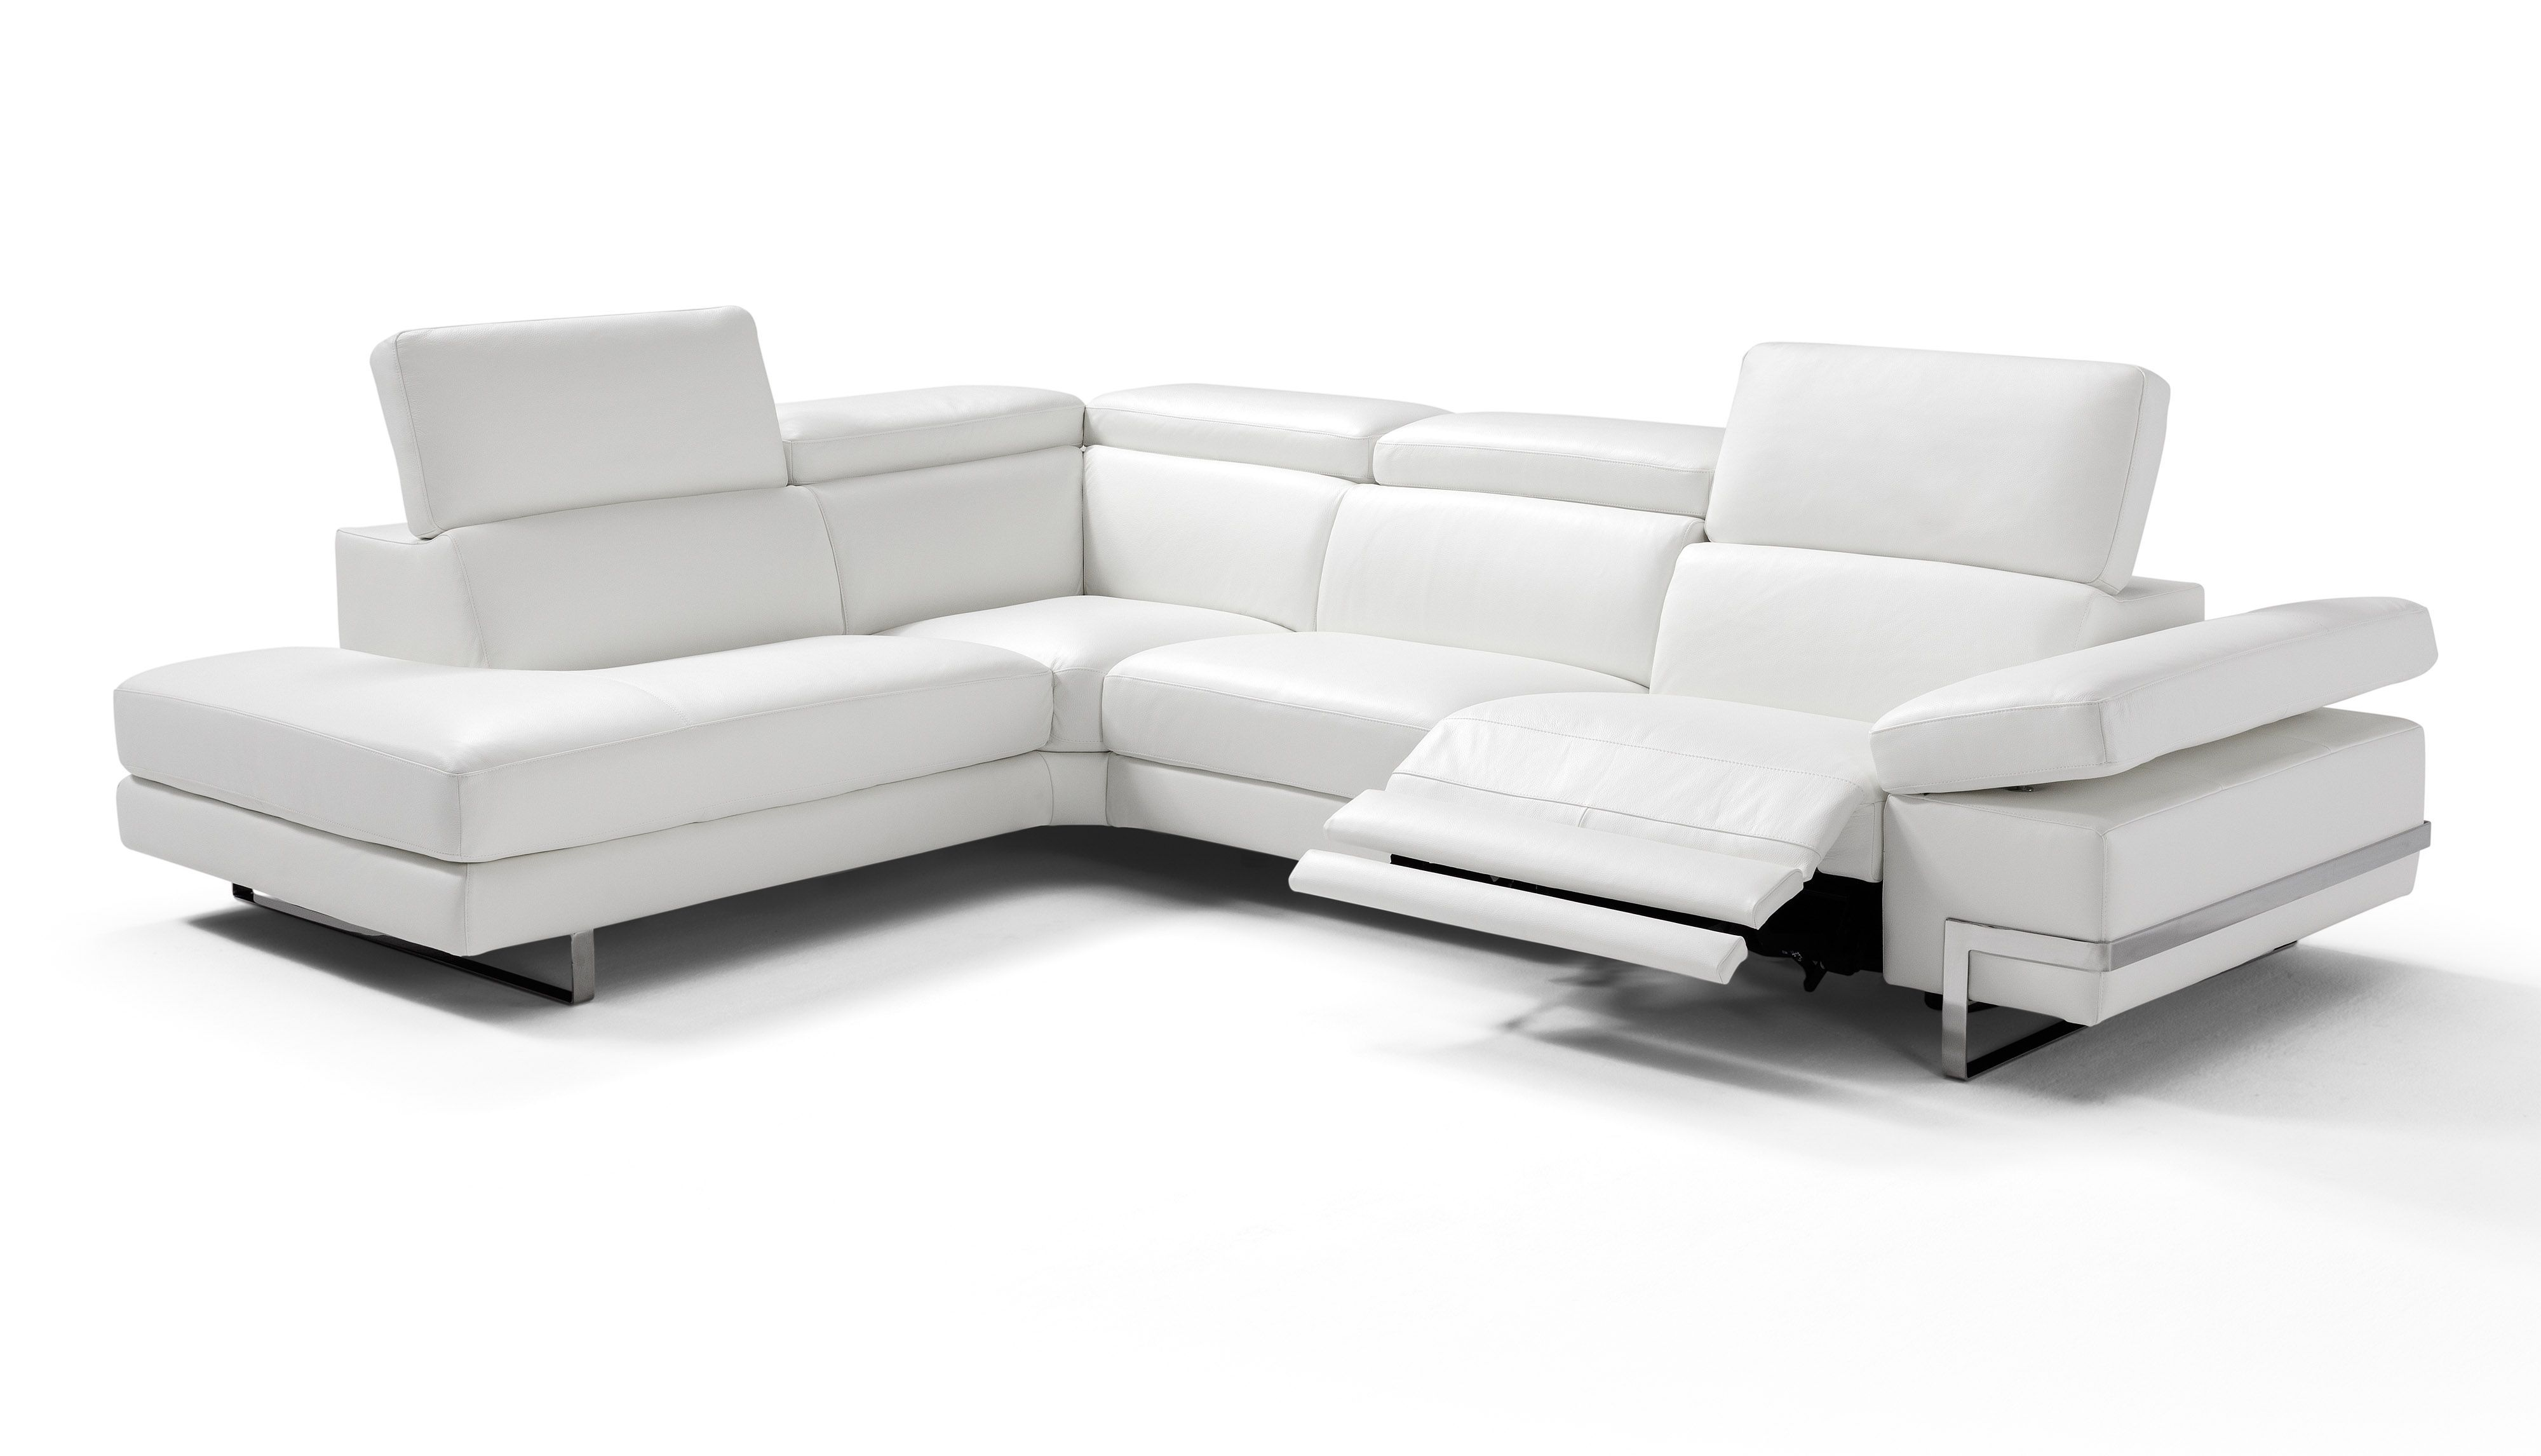 White Leather Sectional Sofa With Built In Recliner The Modern Sectional Sofa Has A Modern Sofa Sectional Corner Sectional Sofa Italian Leather Sectional Sofa